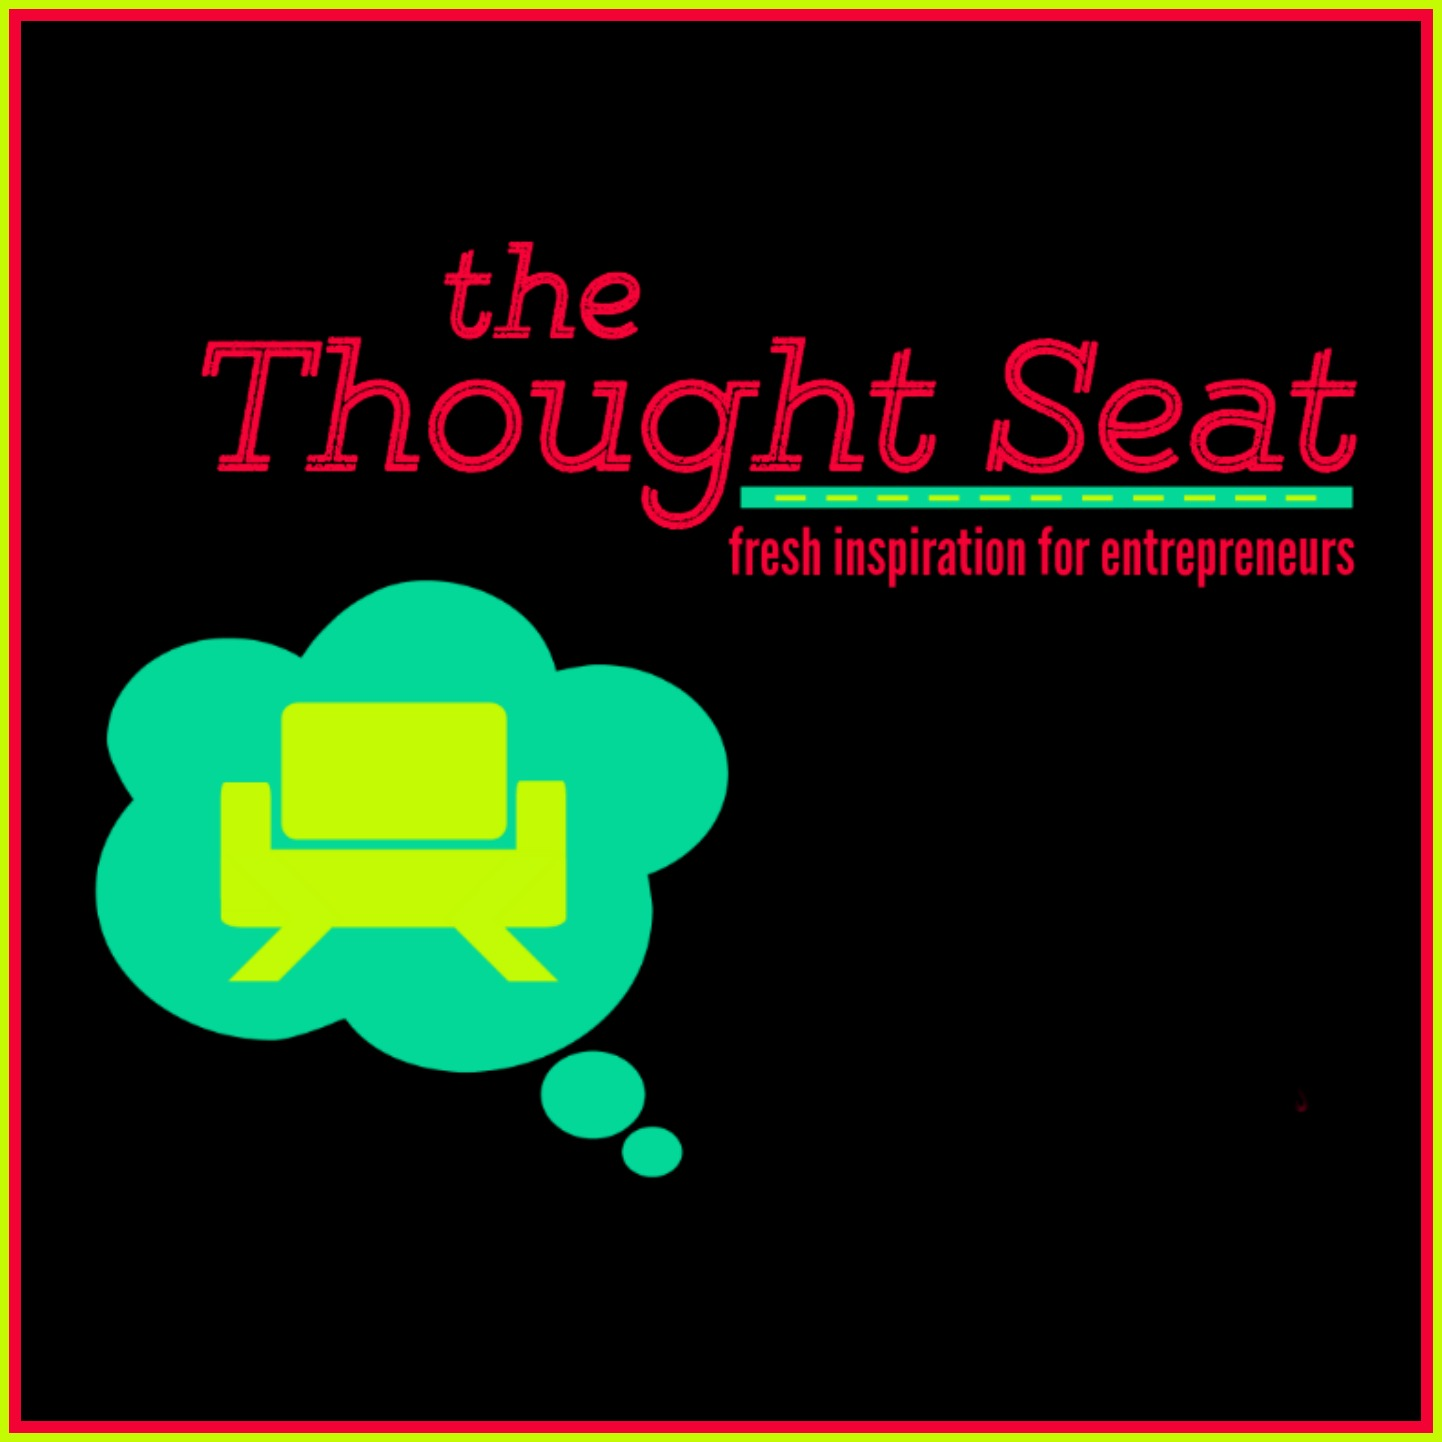 The Thought Seat